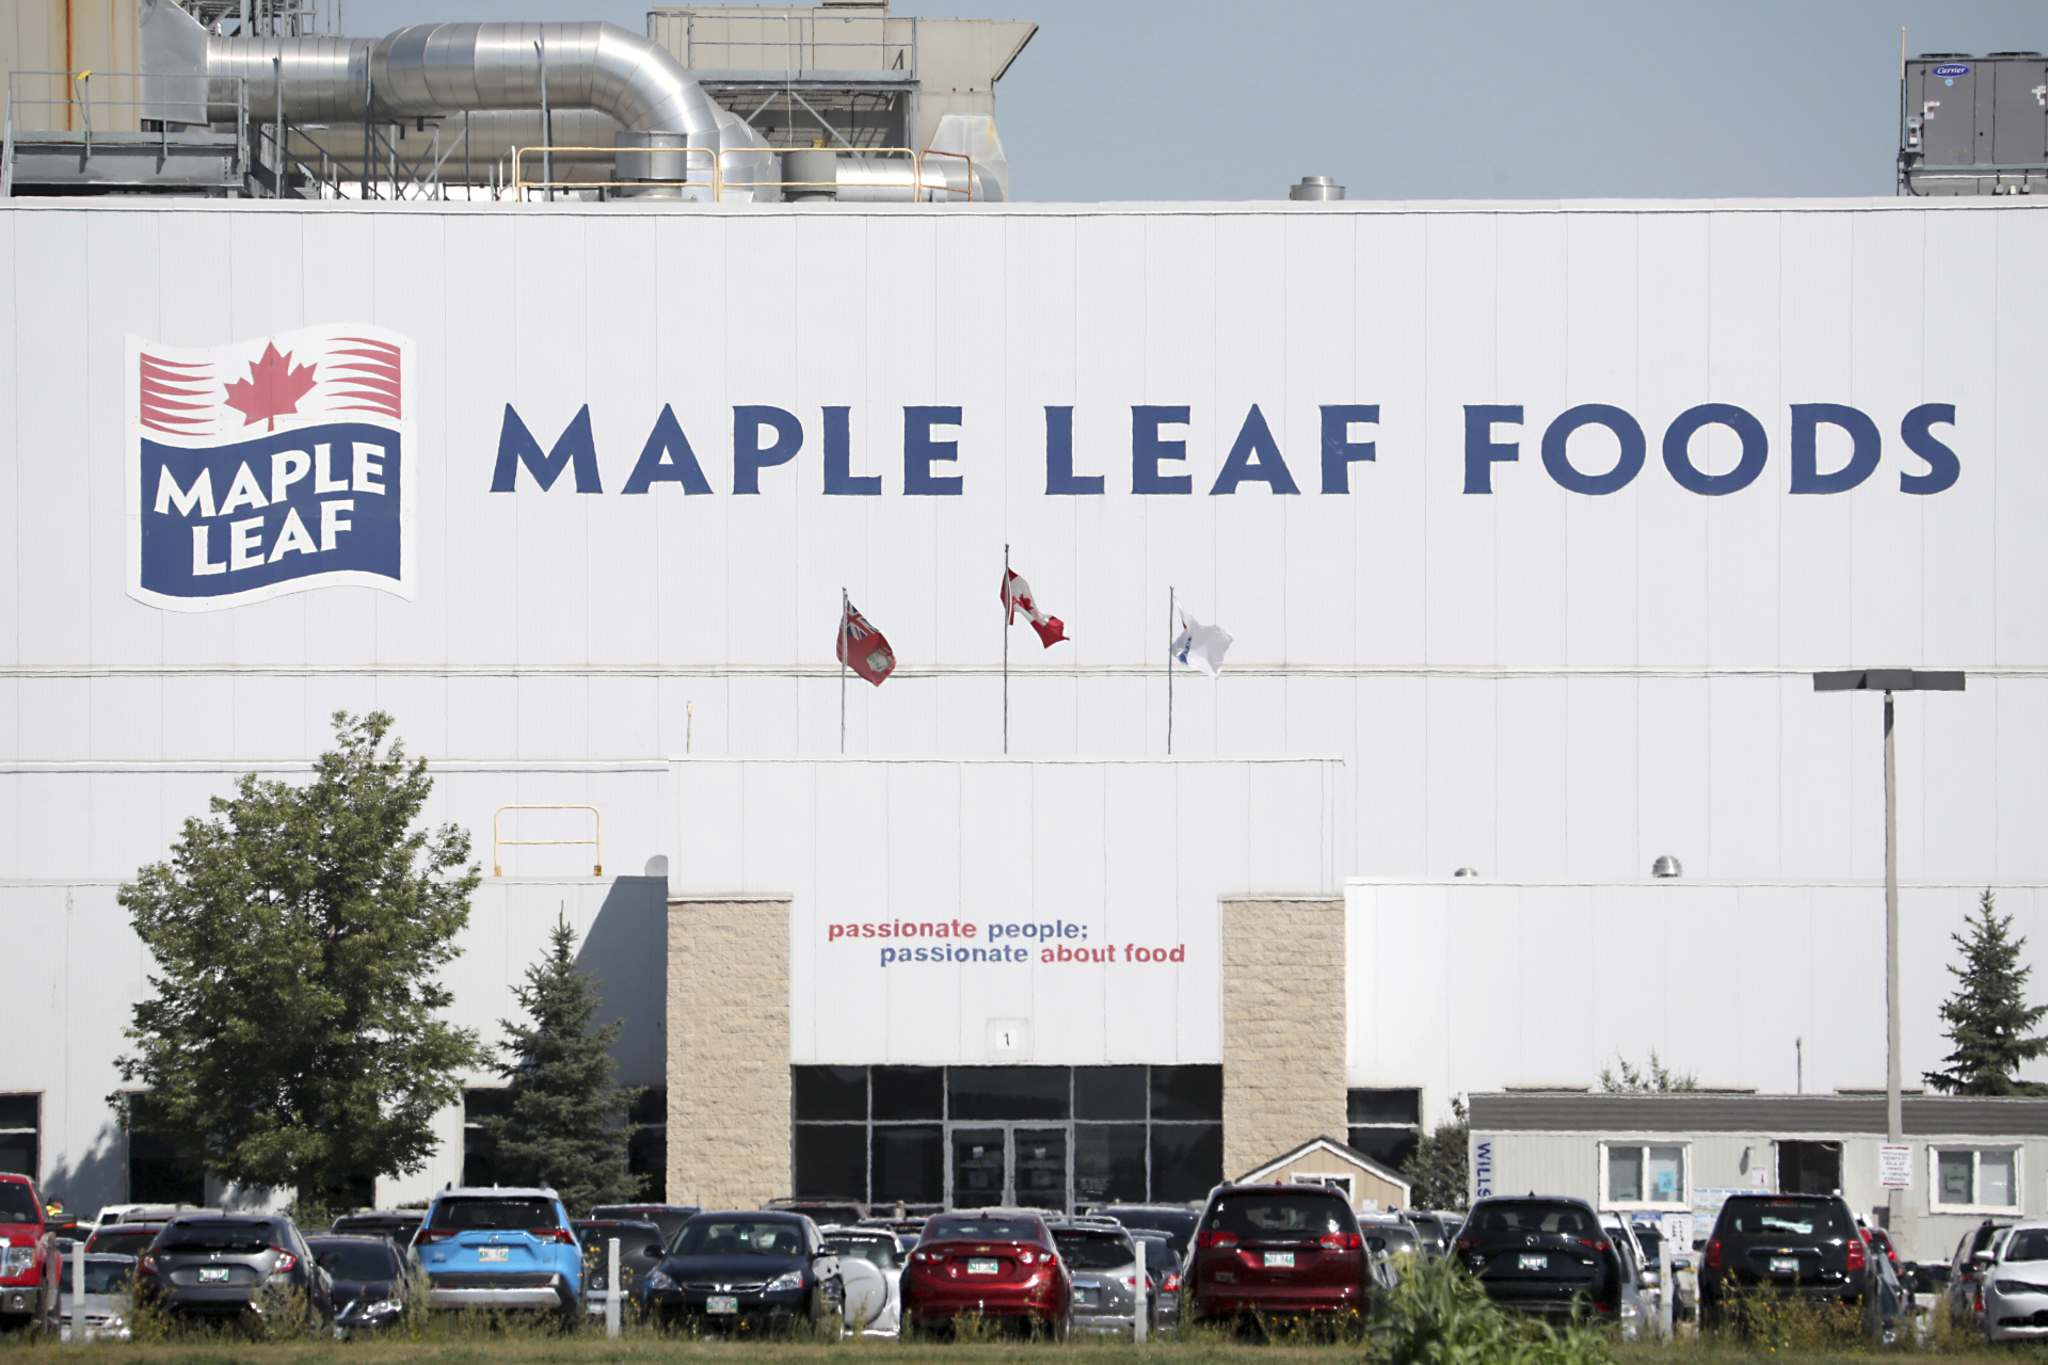 The Maple Leaf Foods plant is seen in Brandon. (File)